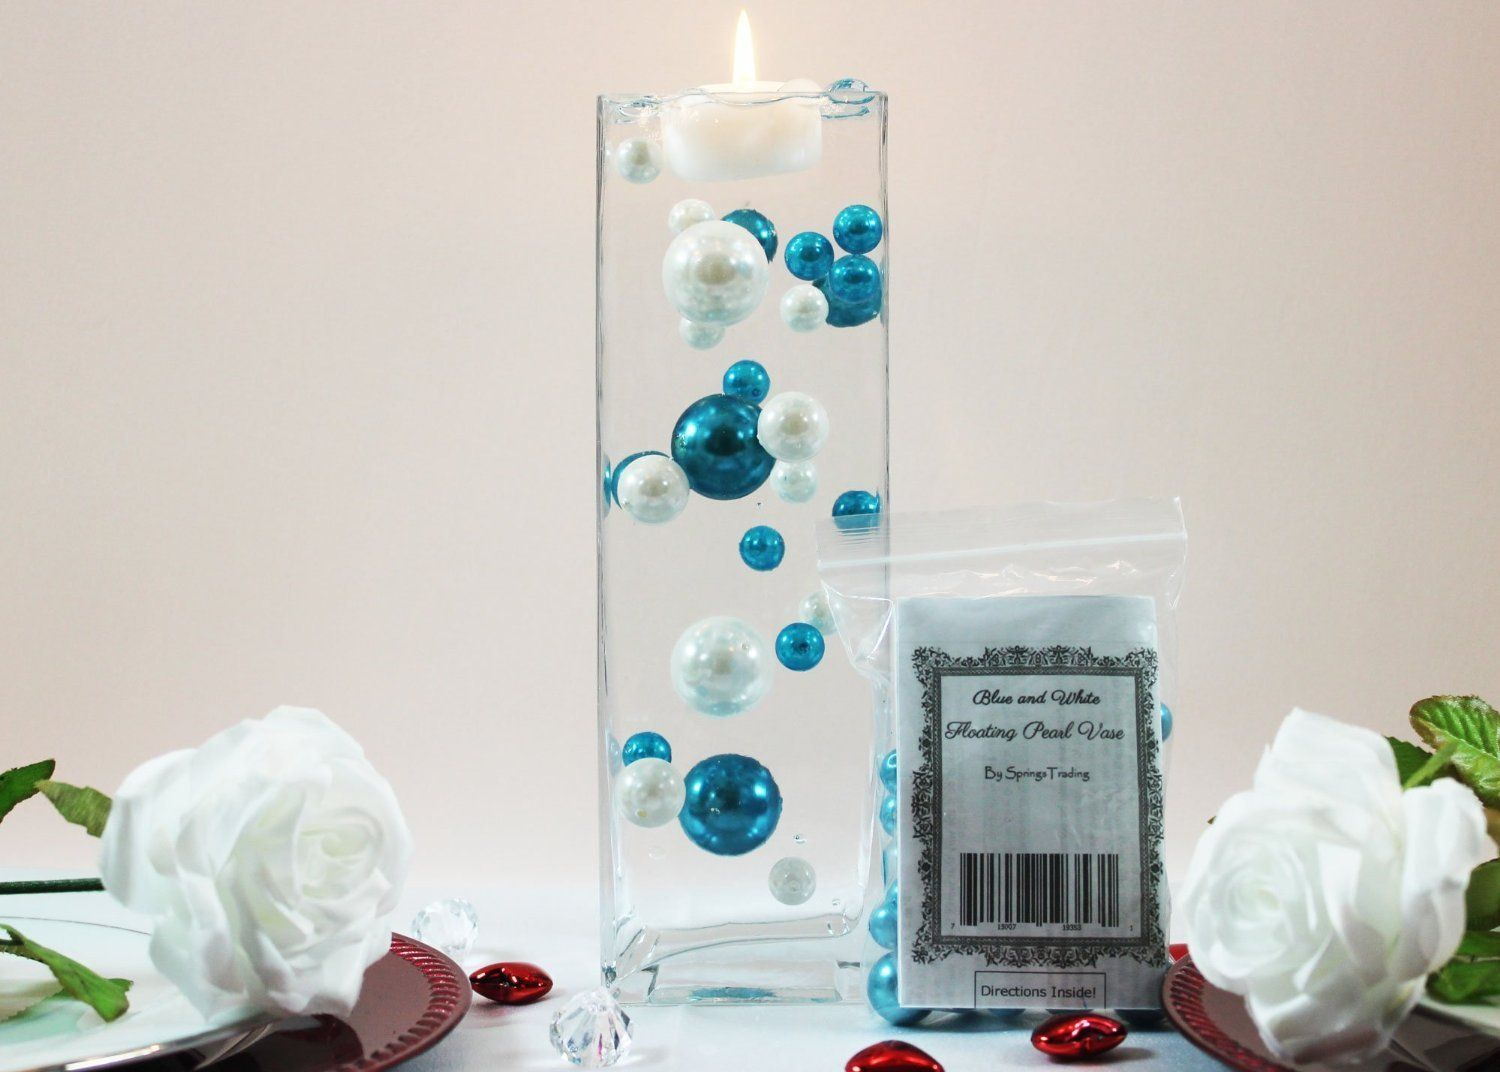 fillers vase teal products turquoise table collections gems diamond scatter wedding